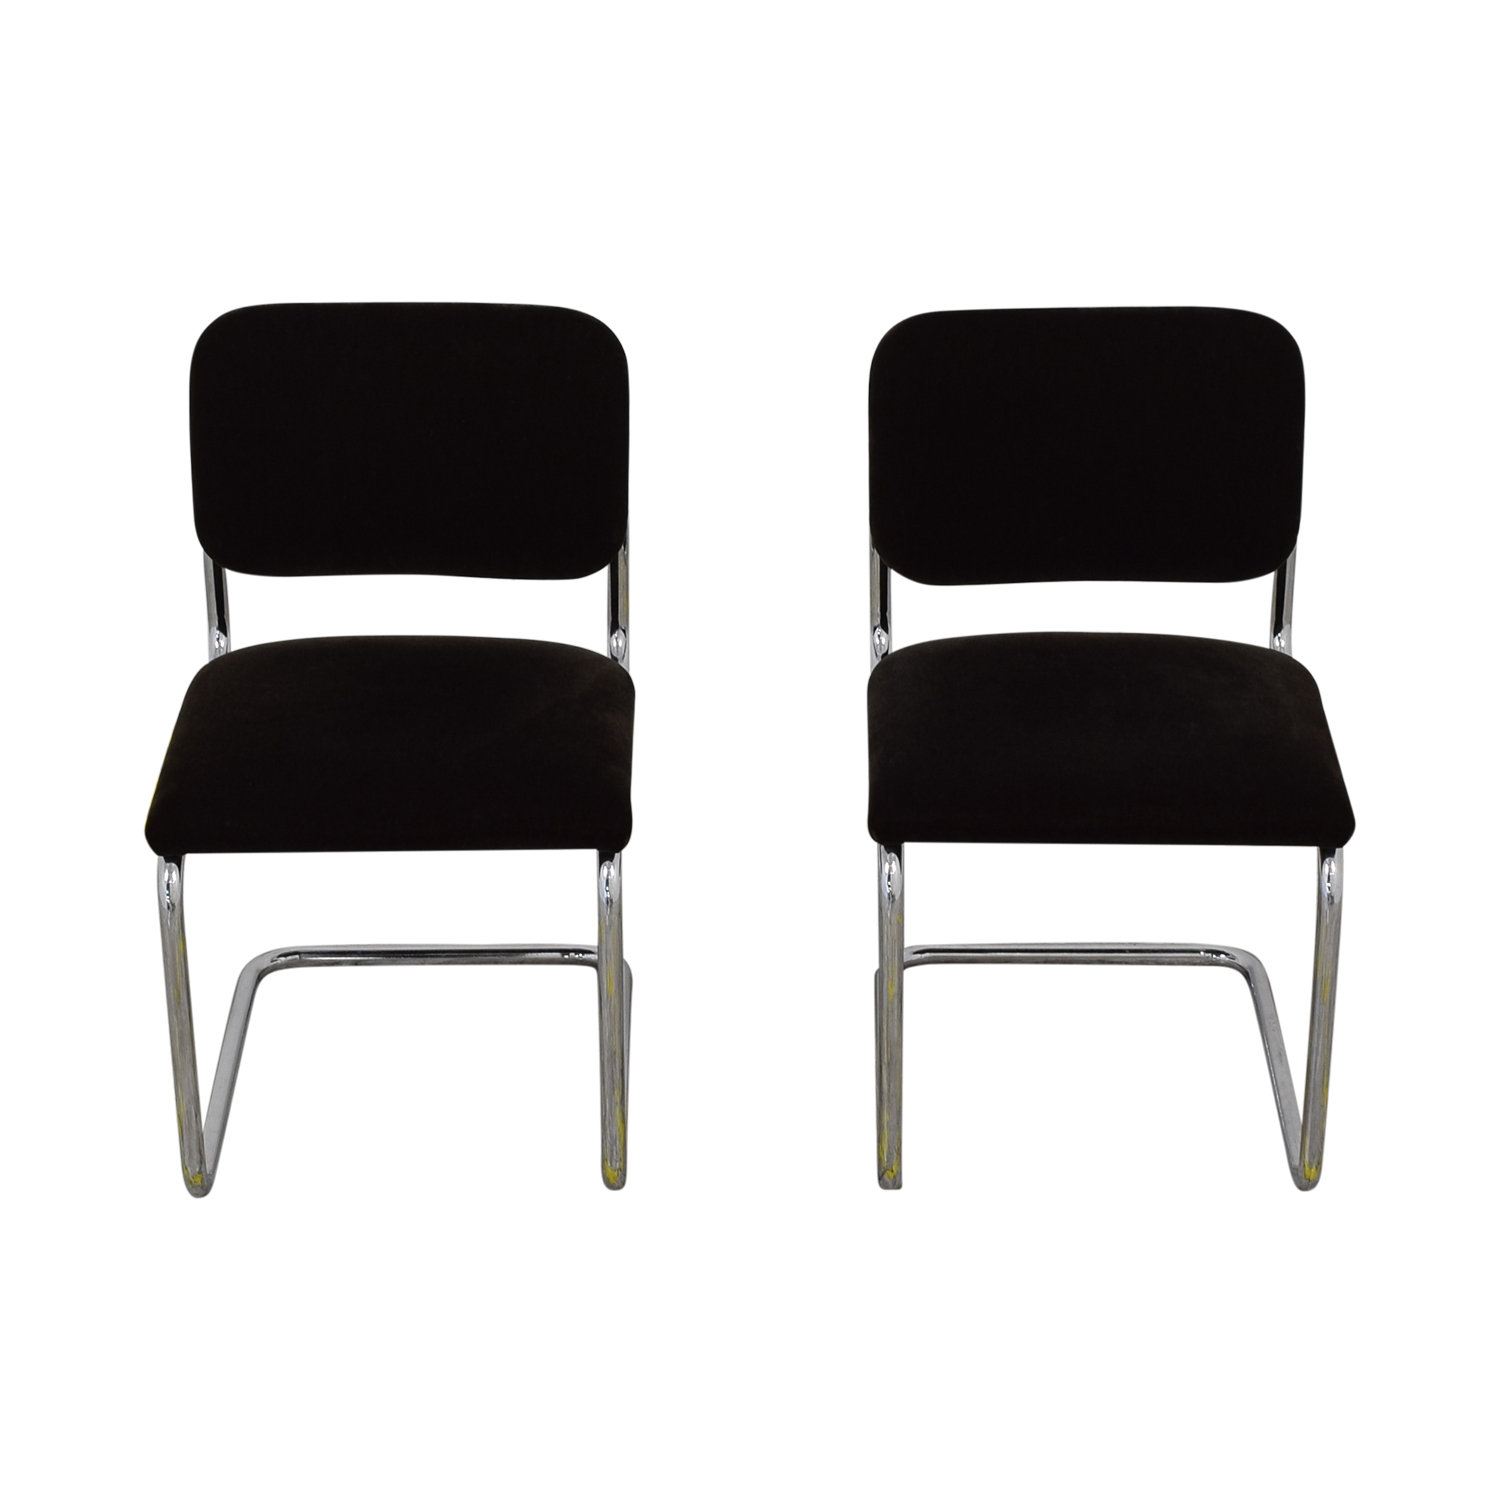 Knoll Knoll Marcel Breuer Cesca Chairs used